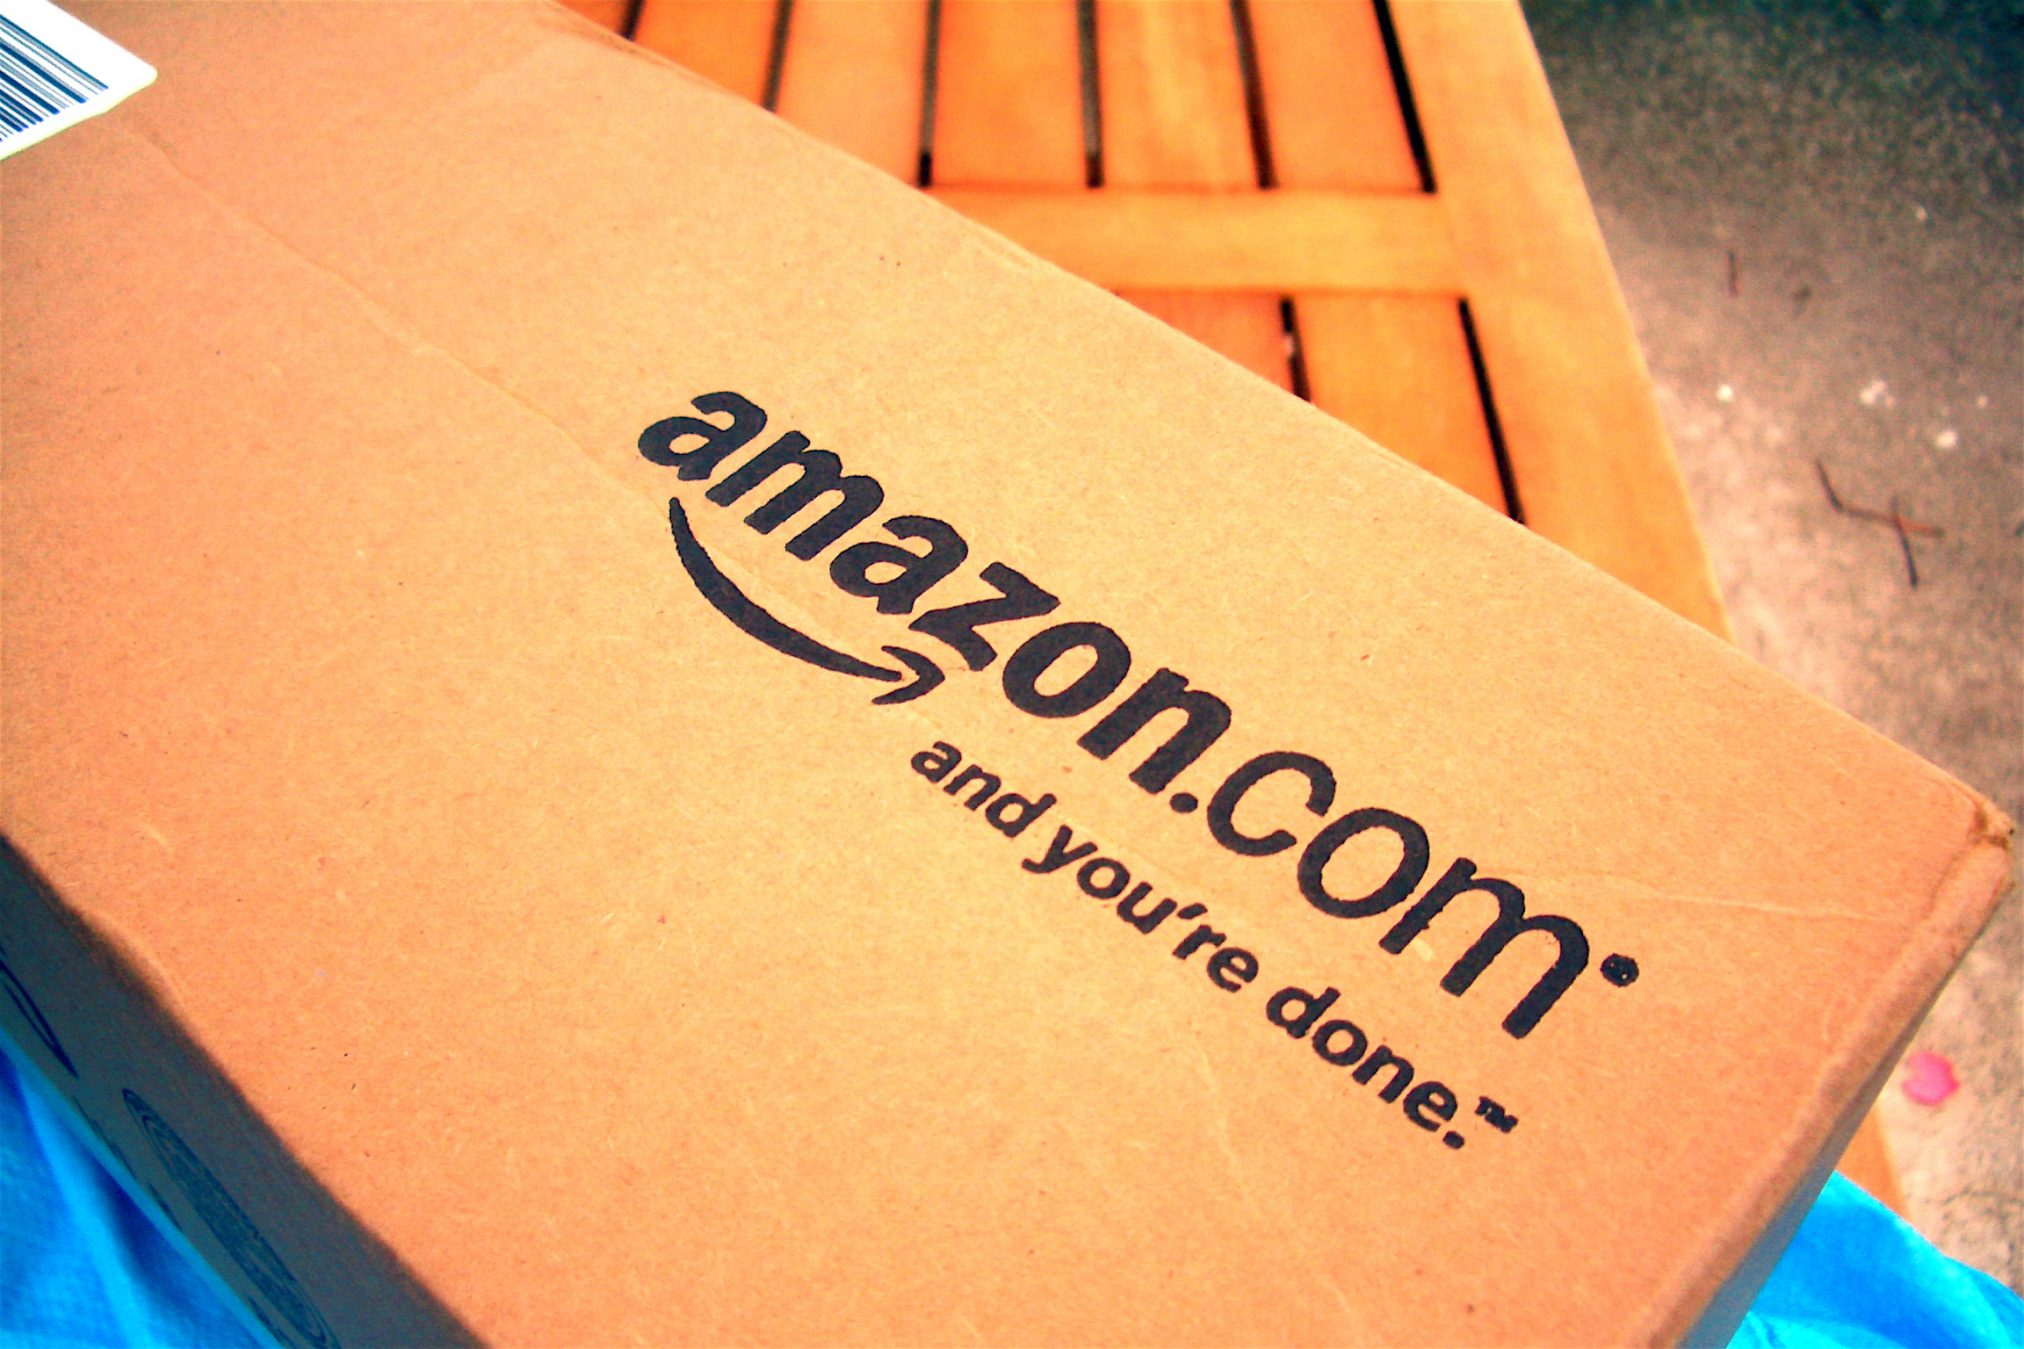 amazon box Photo credit: Mike Seyfang. https://www.flickr.com/photos/mikeblogs/